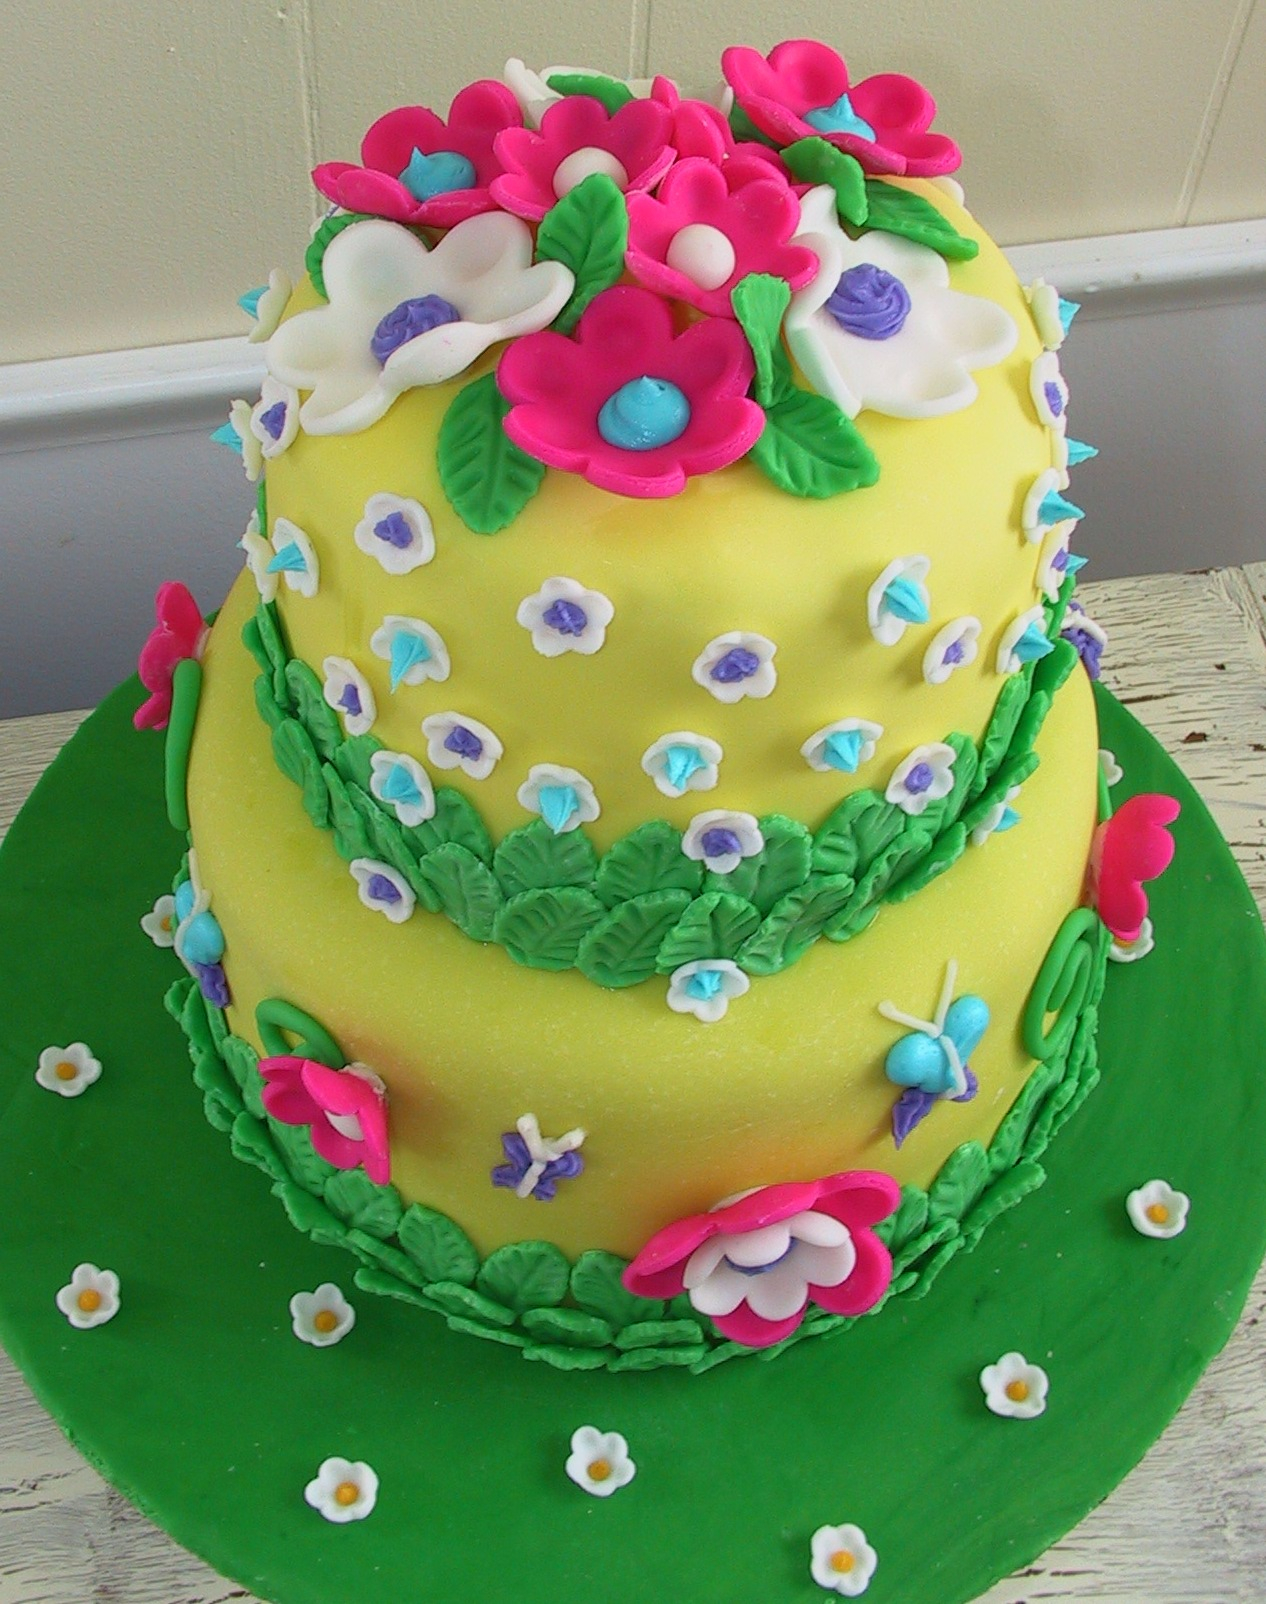 Happy Birthday Cake And Flowers Images Flower Cakes Decoration Ideas Little Birthday Cakes